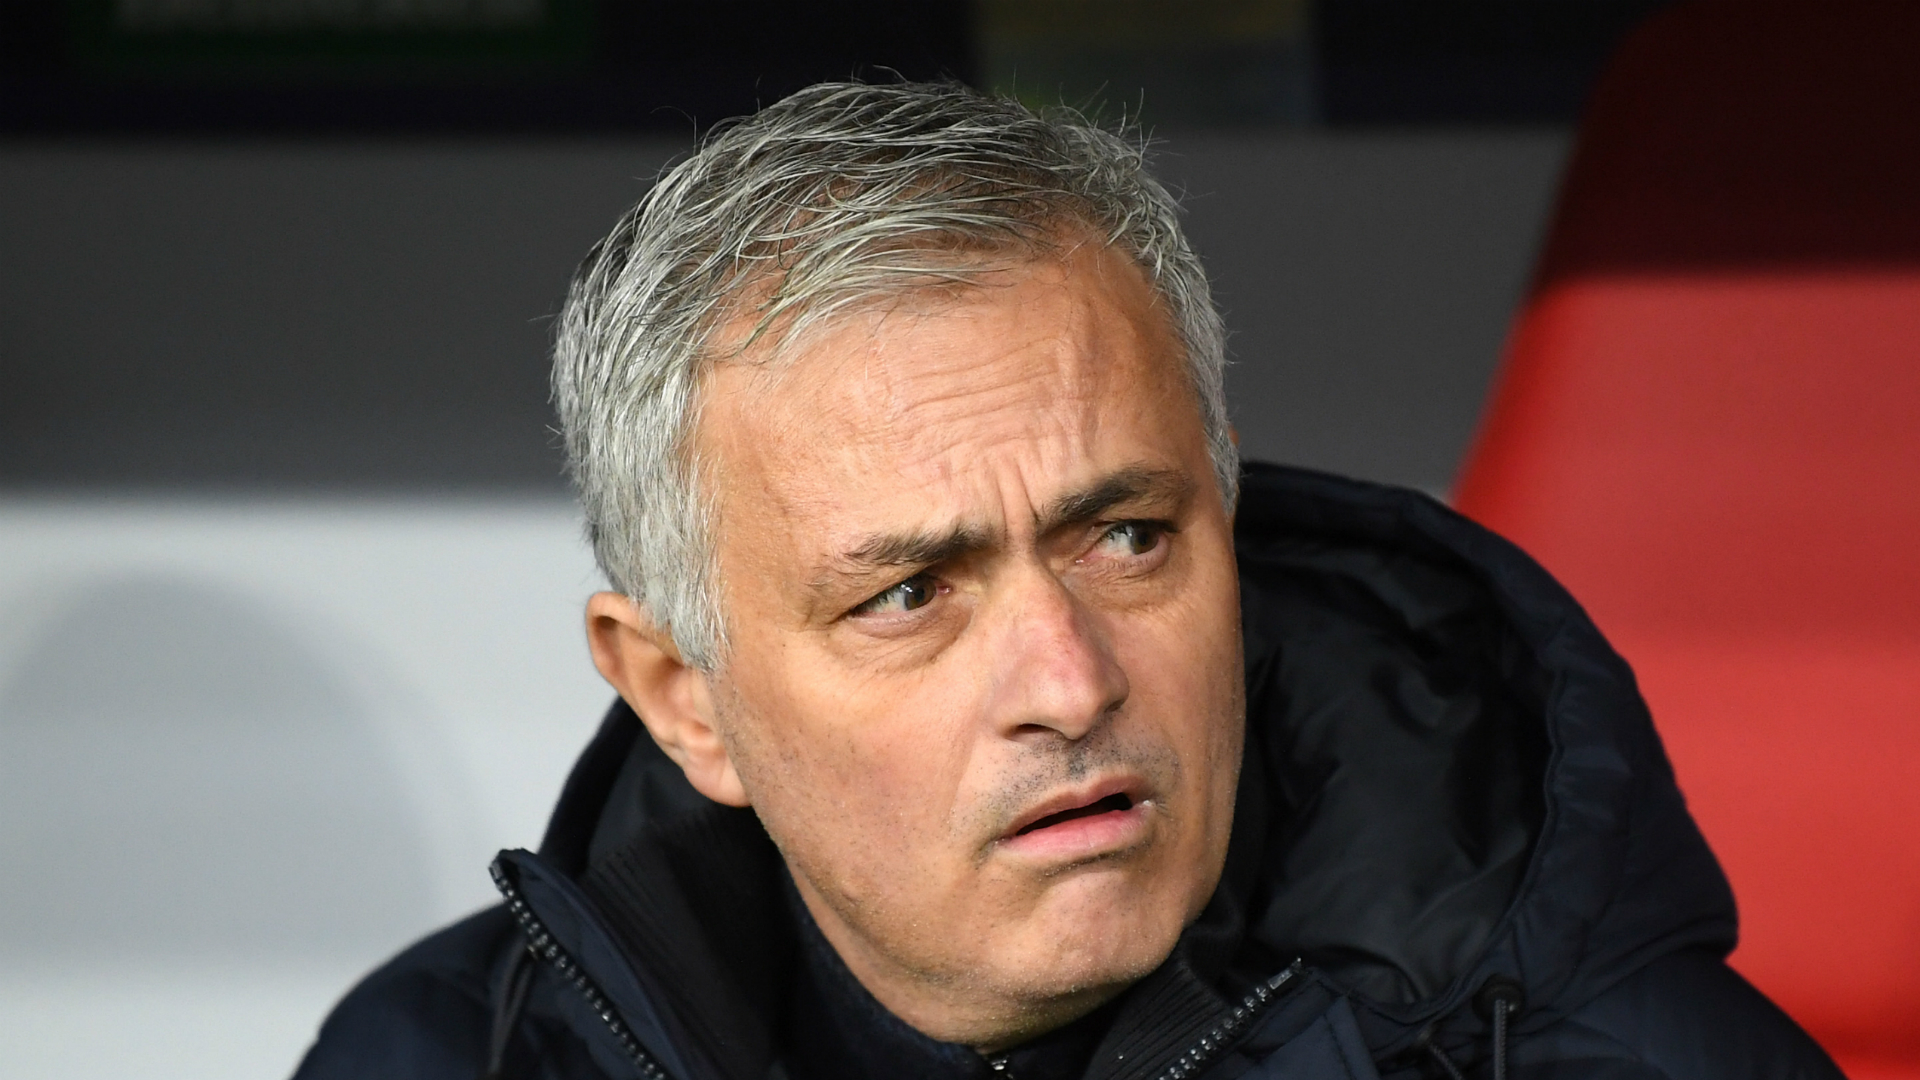 Mourinho grieves after death of 'favourite' dog at Christmas